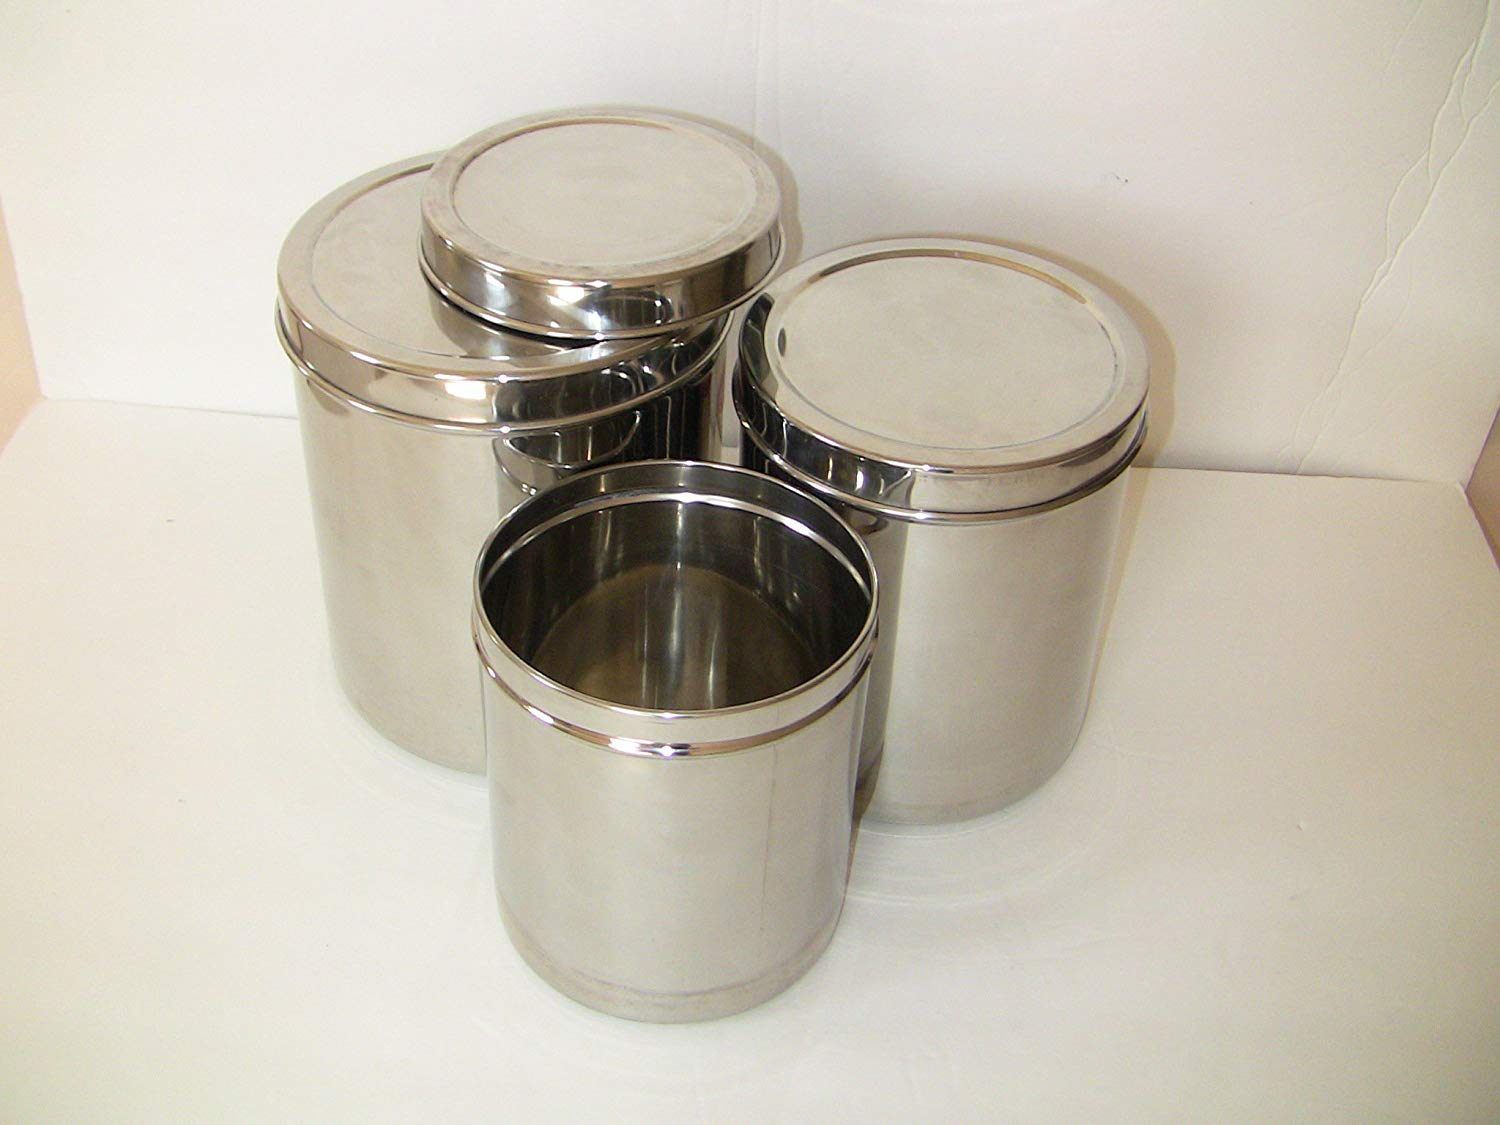 Fantastic Qualways Jumbo Stainless Steel Kitchen Canister Set Of 4 Set Of 4 6 5 Lb 5 Lb 4 Lb And 3 Lb Canister Set Best Image Libraries Thycampuscom